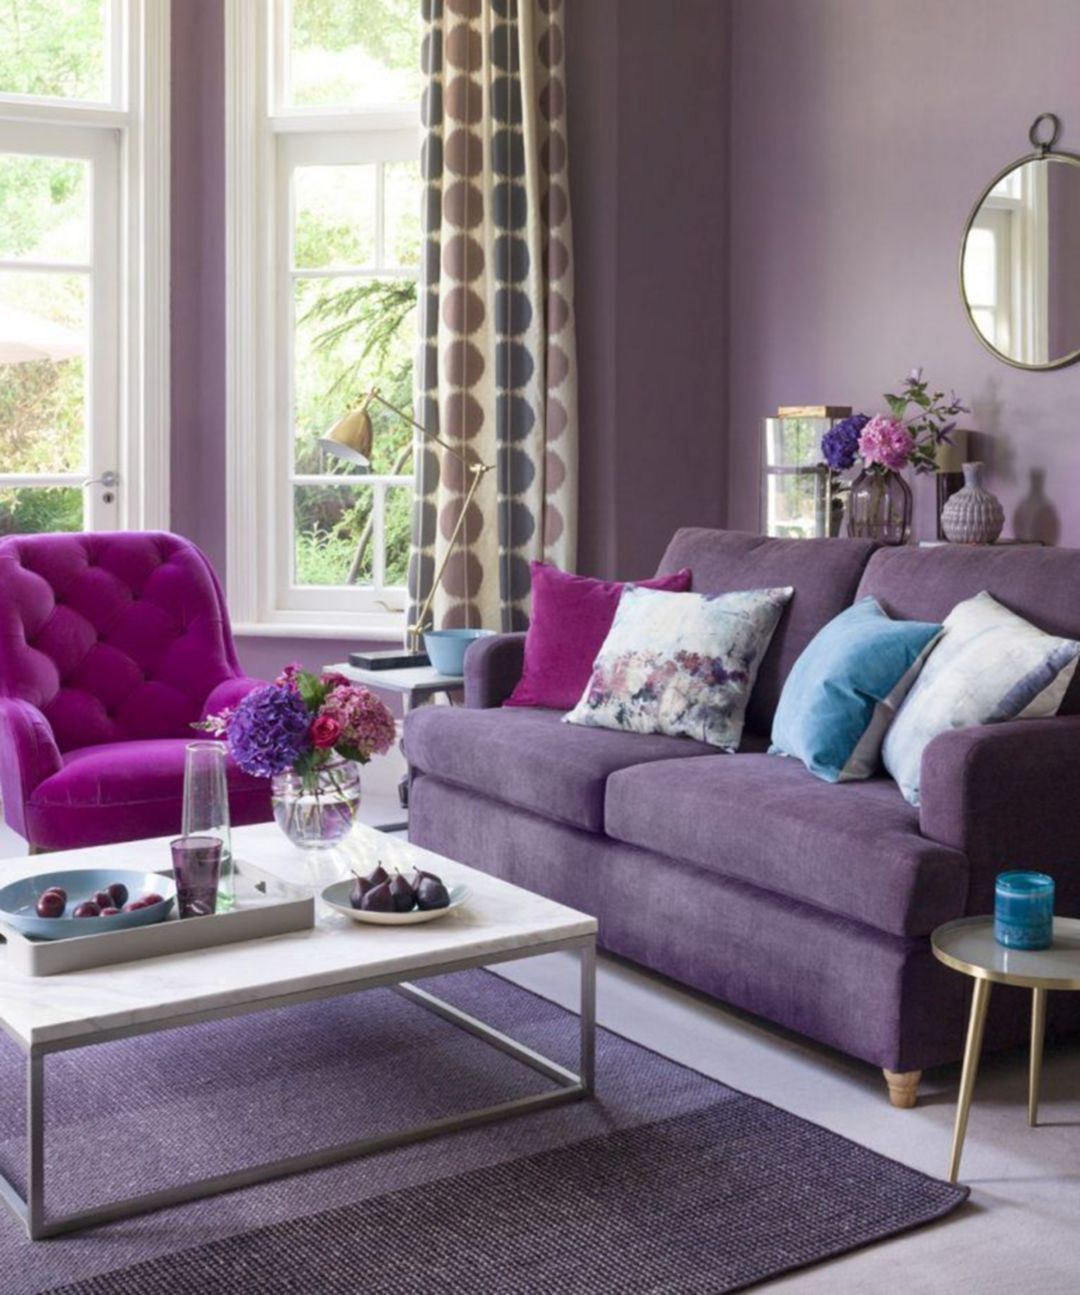 30 Cute Living Room With Purple Color Schemes Design Ideas Decoor Purple Living Room Living Room Color Schemes Purple Living Room Furniture #purple #and #green #living #room #ideas